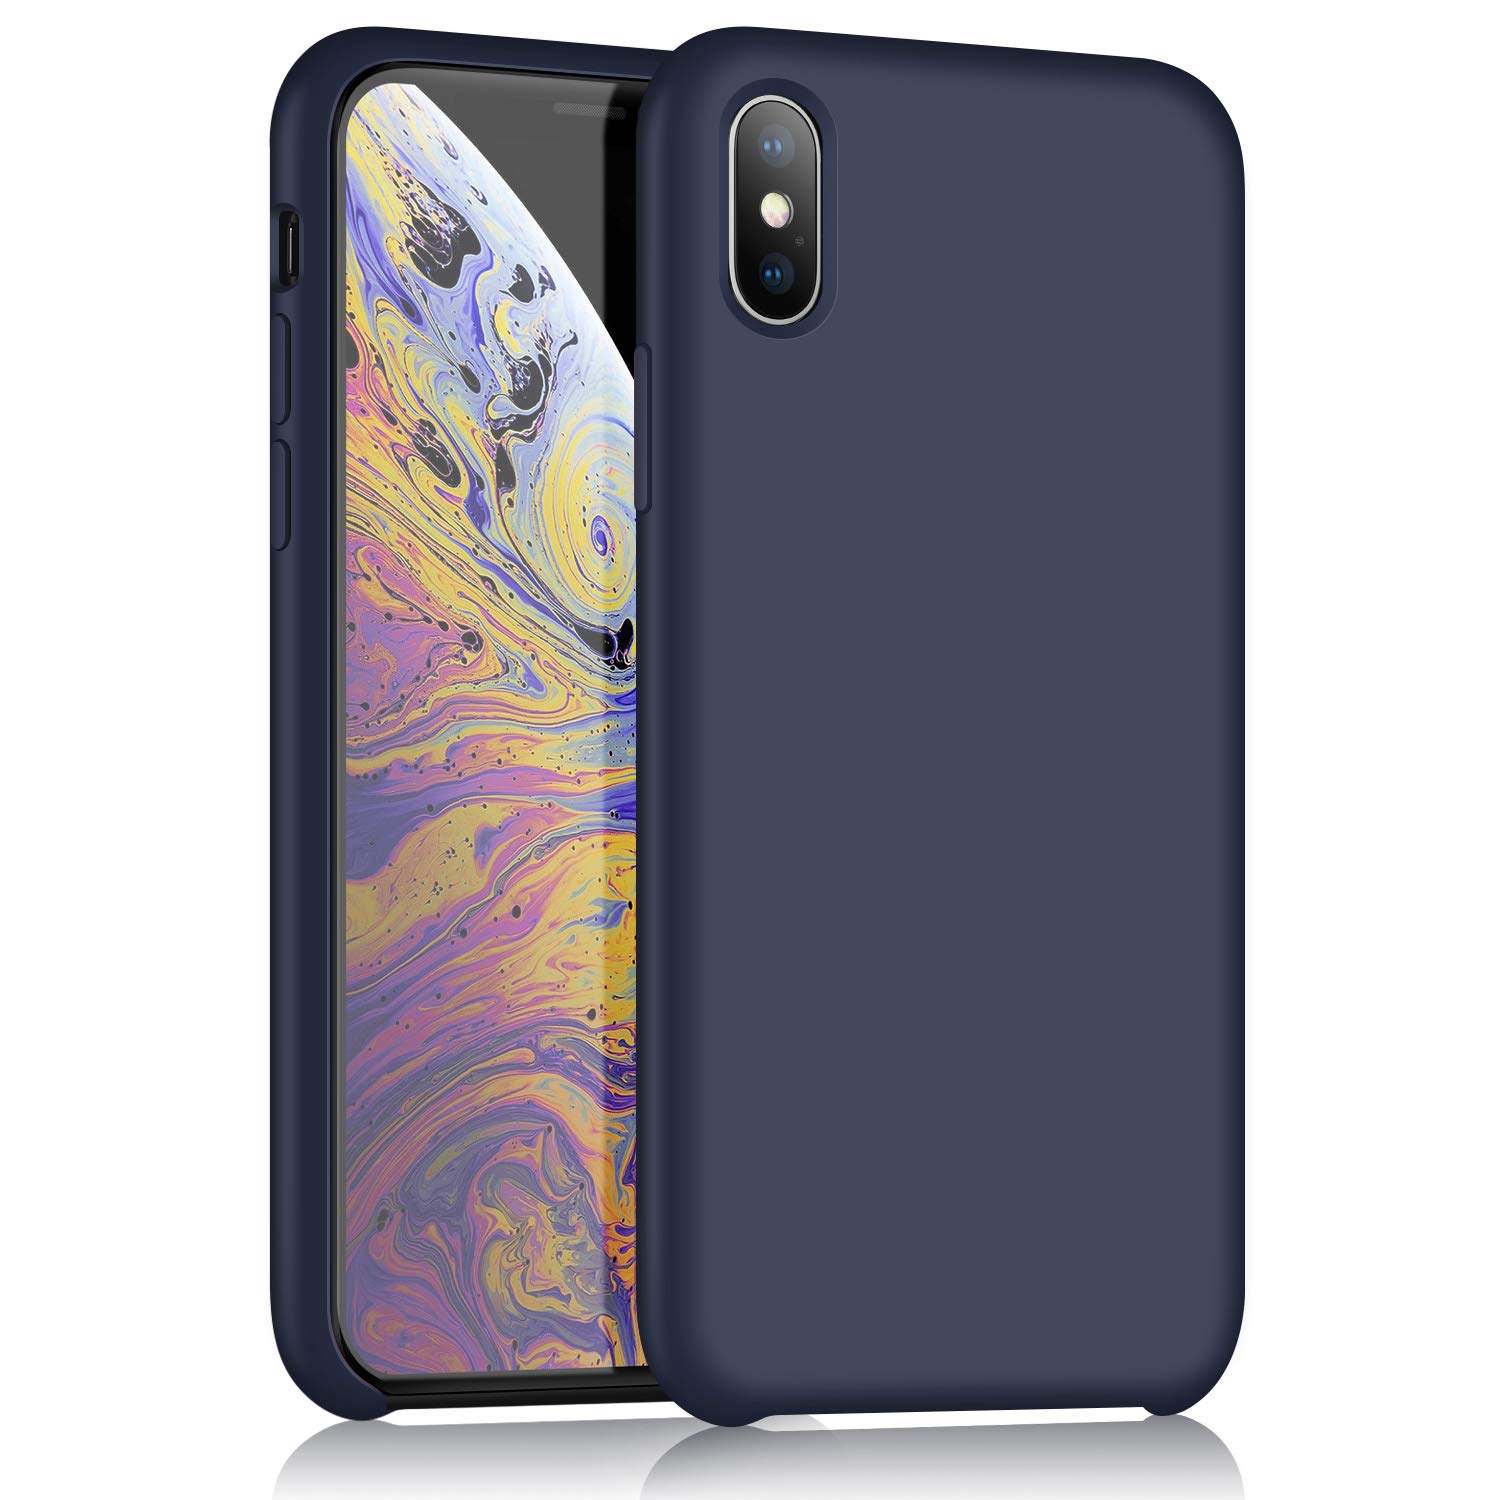 buy online aca6d 2a97a XSHNUO iPhone X Silicone Case, Slim Liquid Silicone Gel Rubber Ultra Thin  Case Soft Microfiber Cloth Lining Cushion for Apple iPhone X (2017) 5.8  inch ...